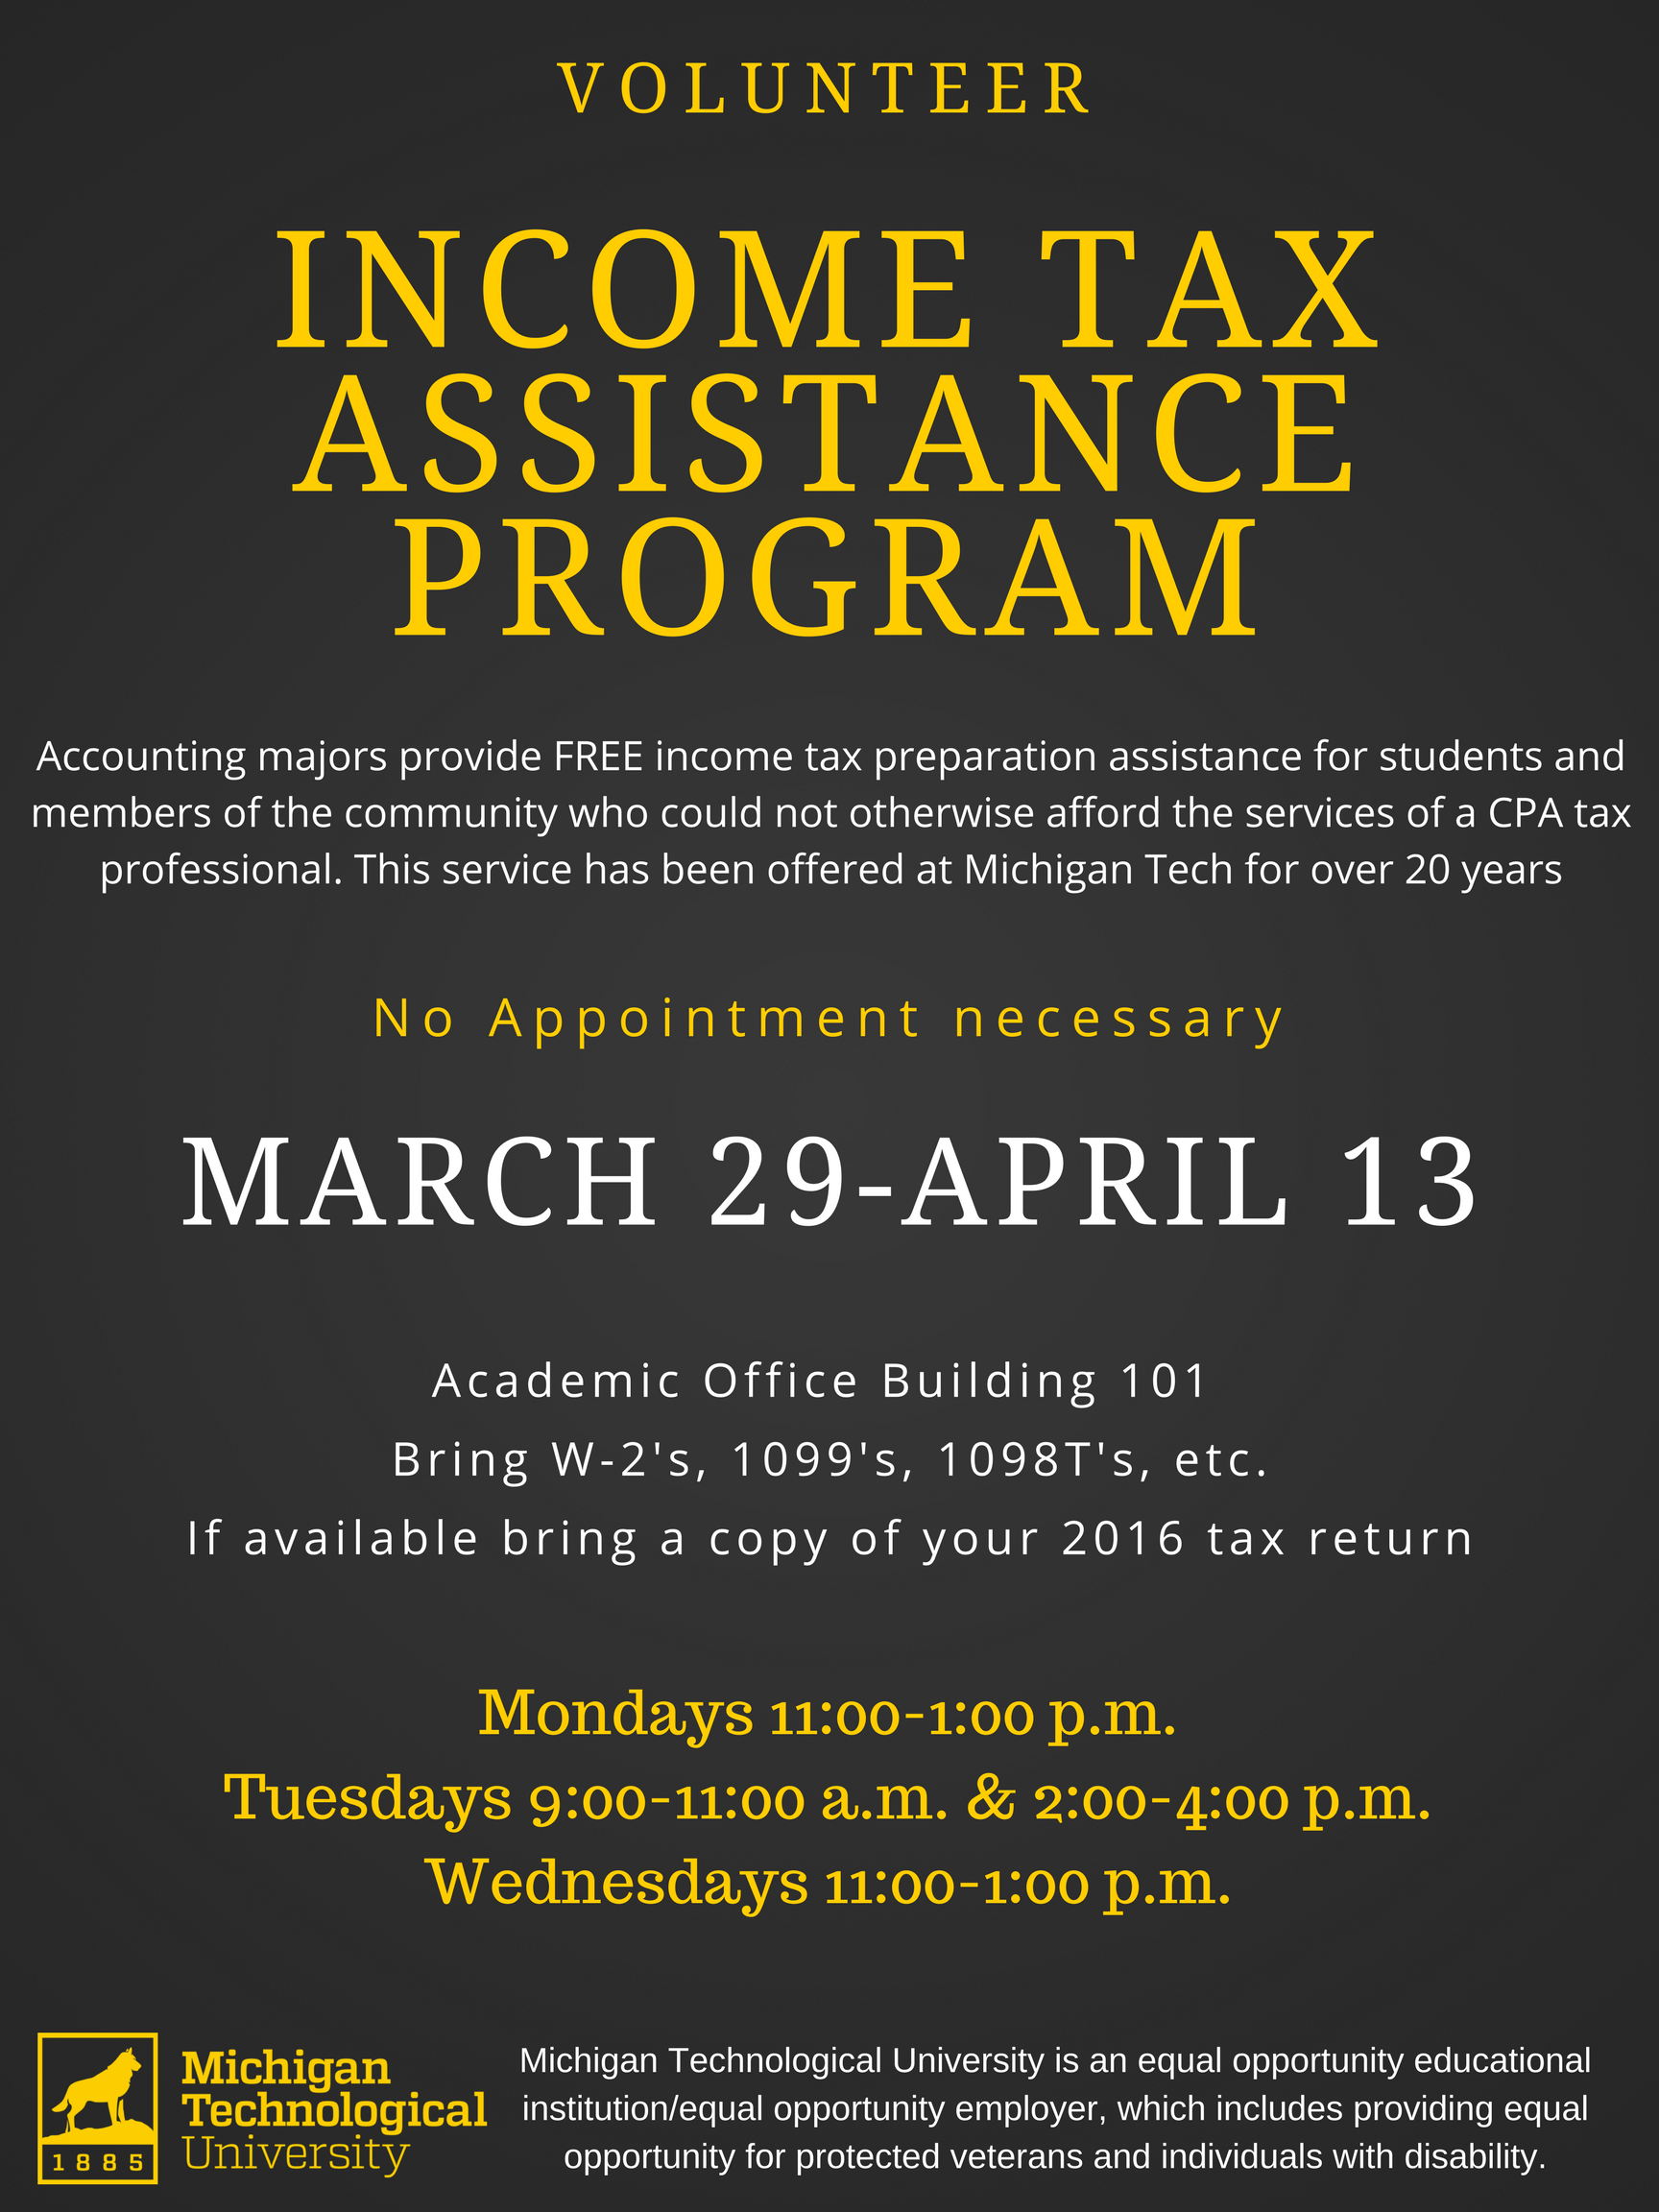 Volunteer Incoming Tax assistance Program